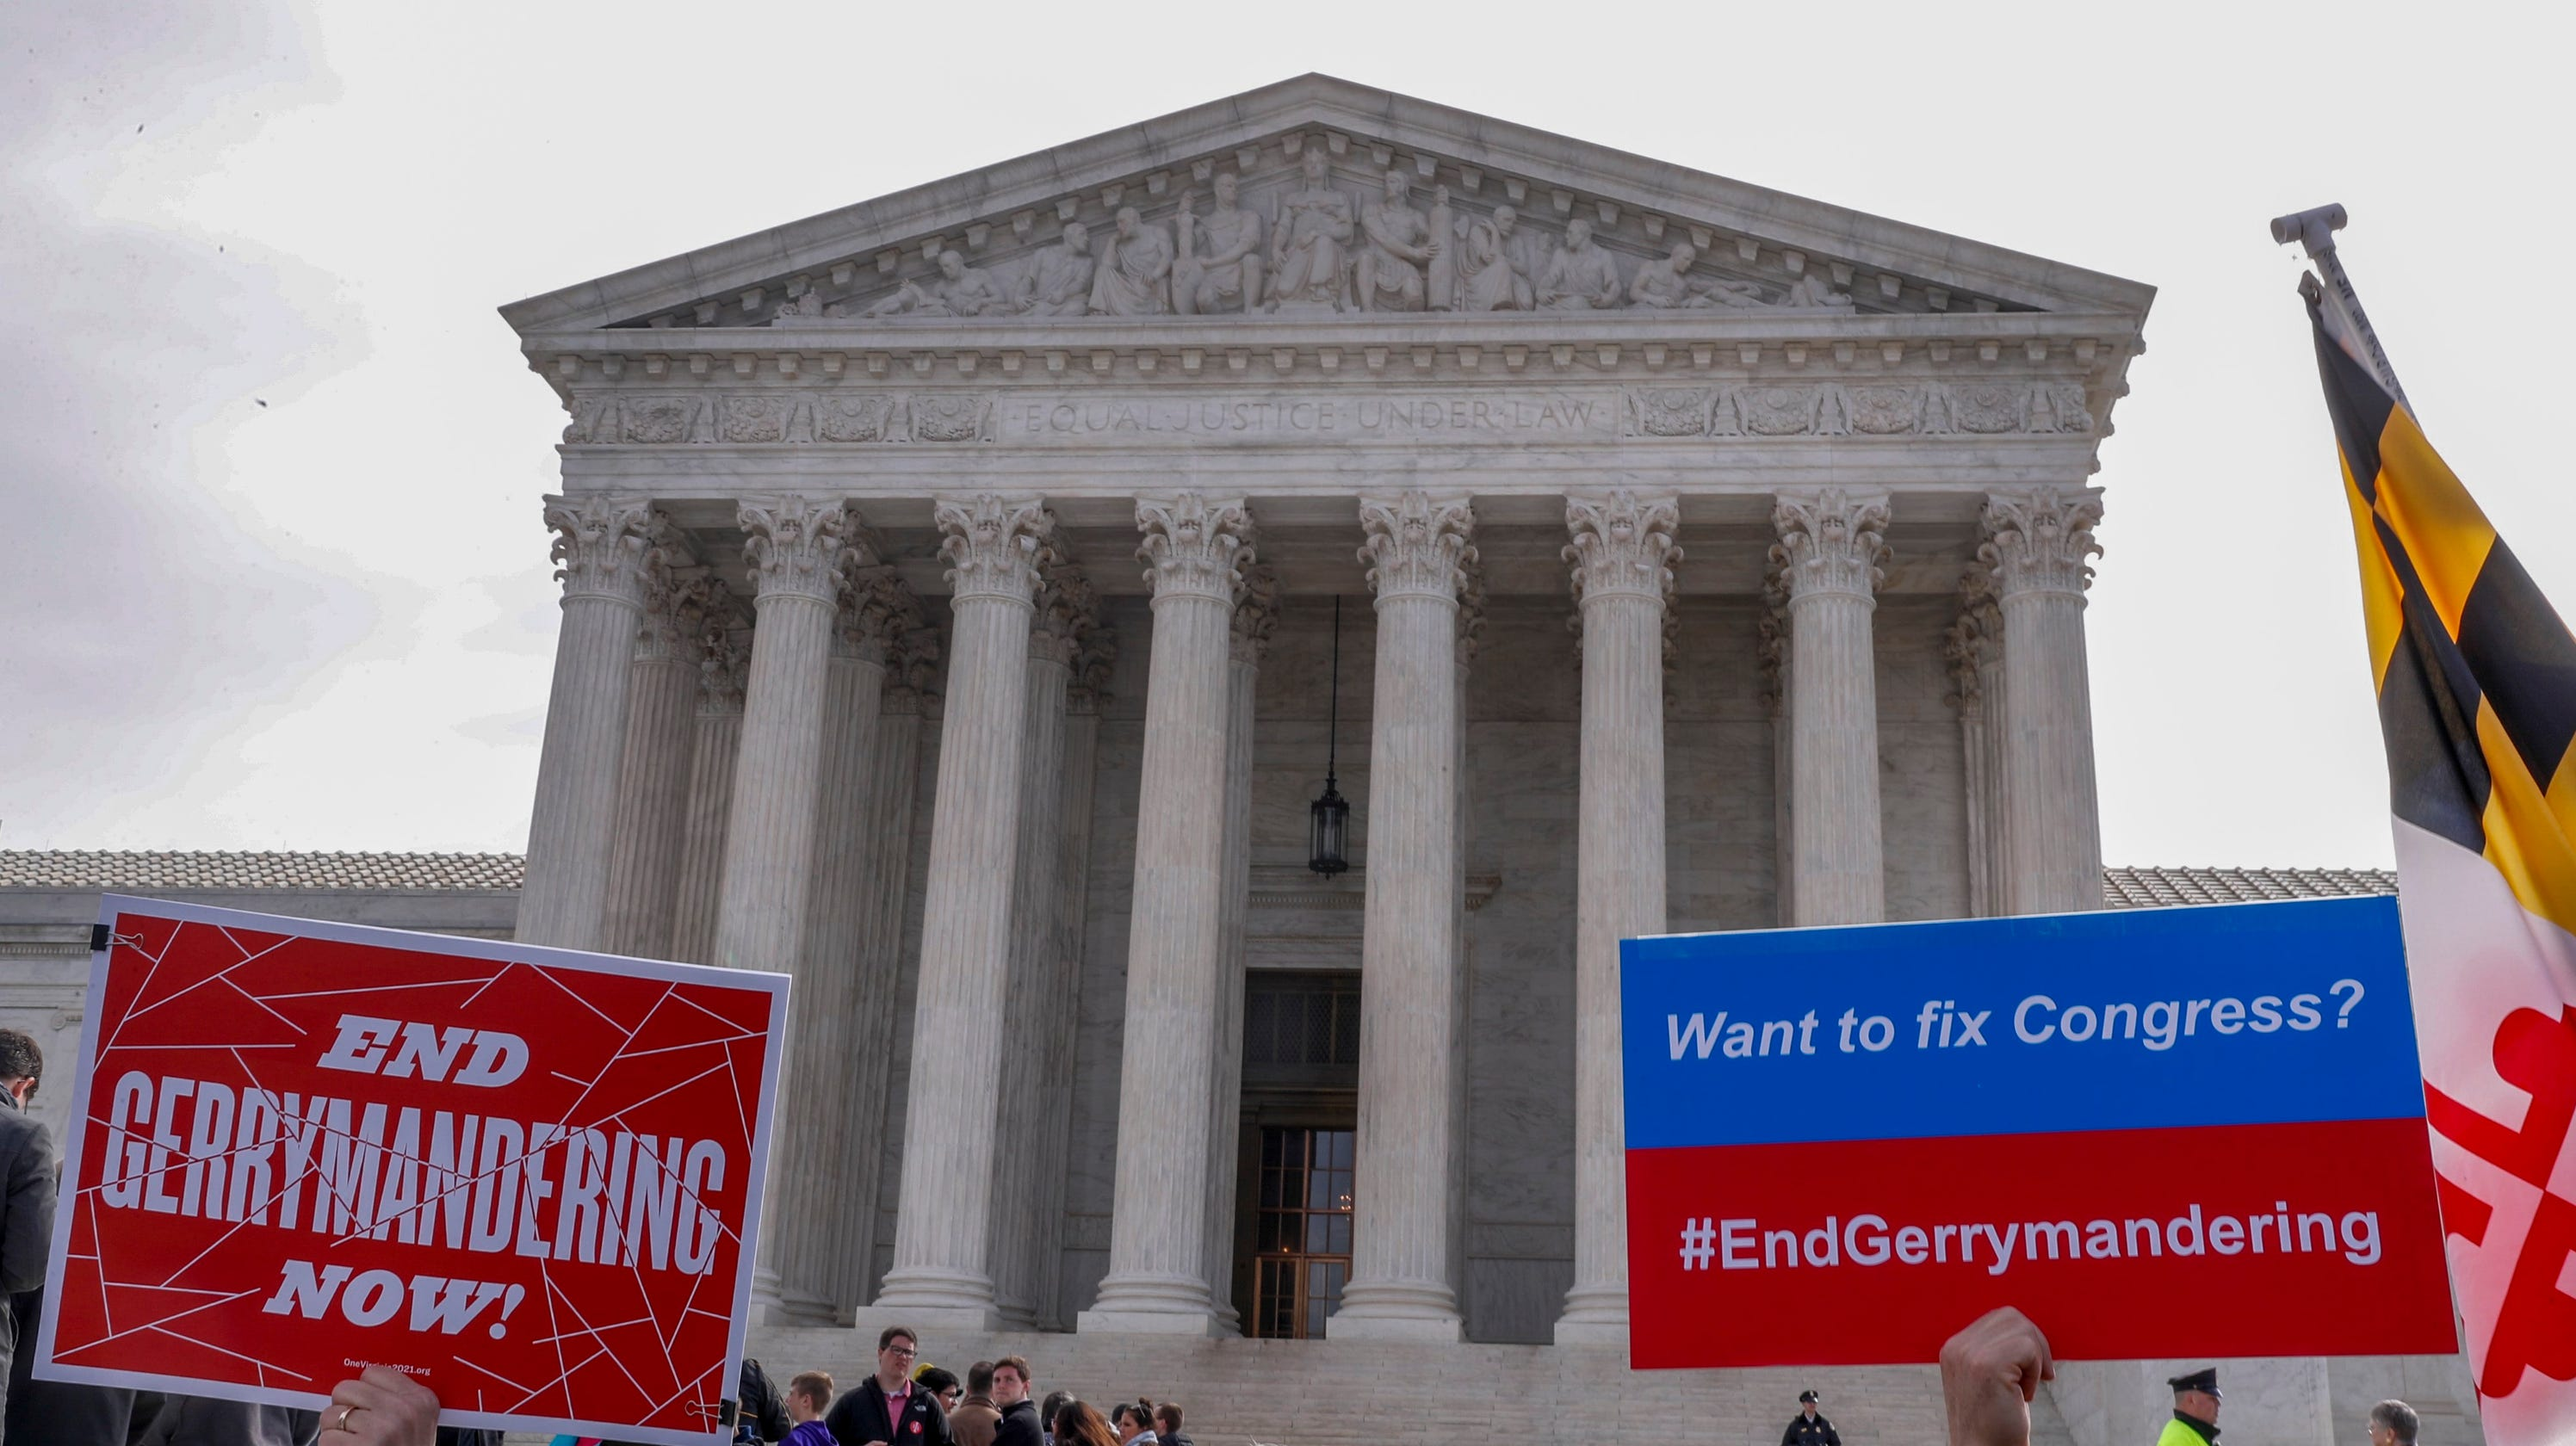 The Supreme Court takes on gerrymandering. A cottage industry wants to prove it's gone too far